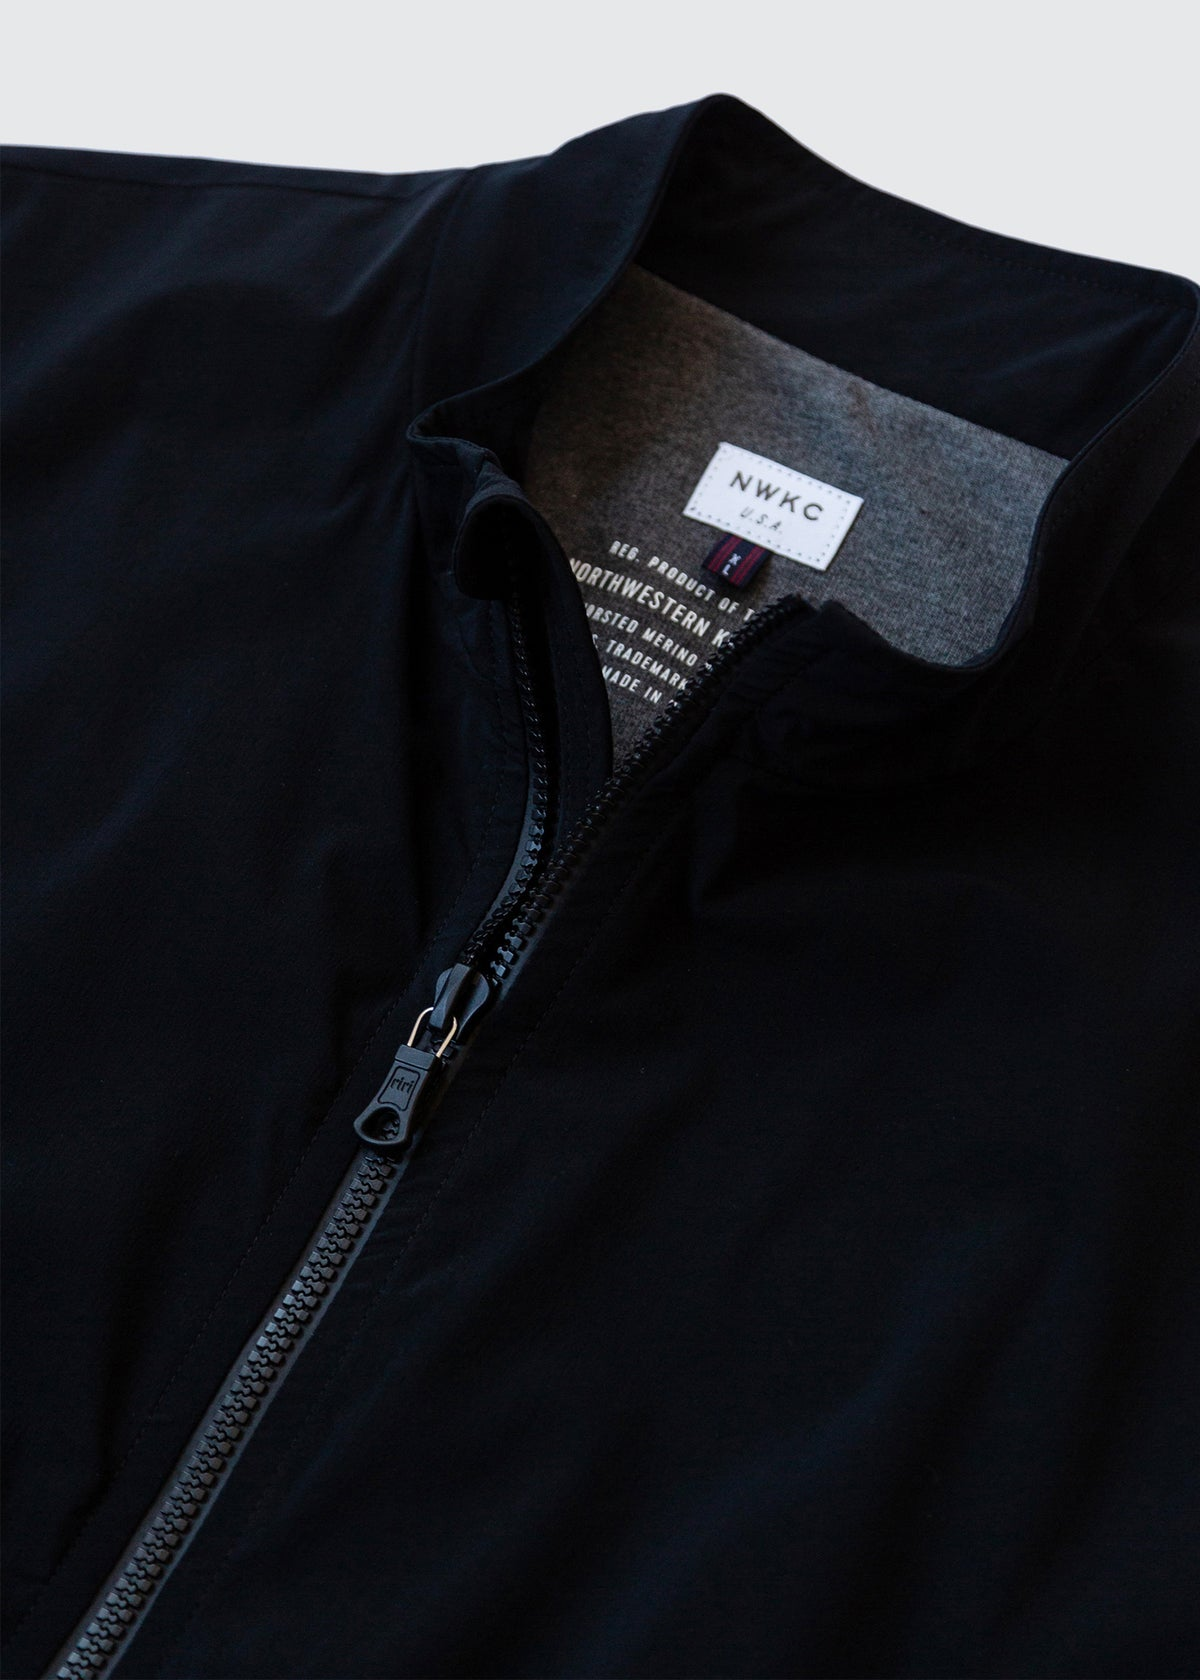 302 - QUILTED COLLAR ZIP - BLACK - Wilson & Willy's - MPLS Neighbor Goods